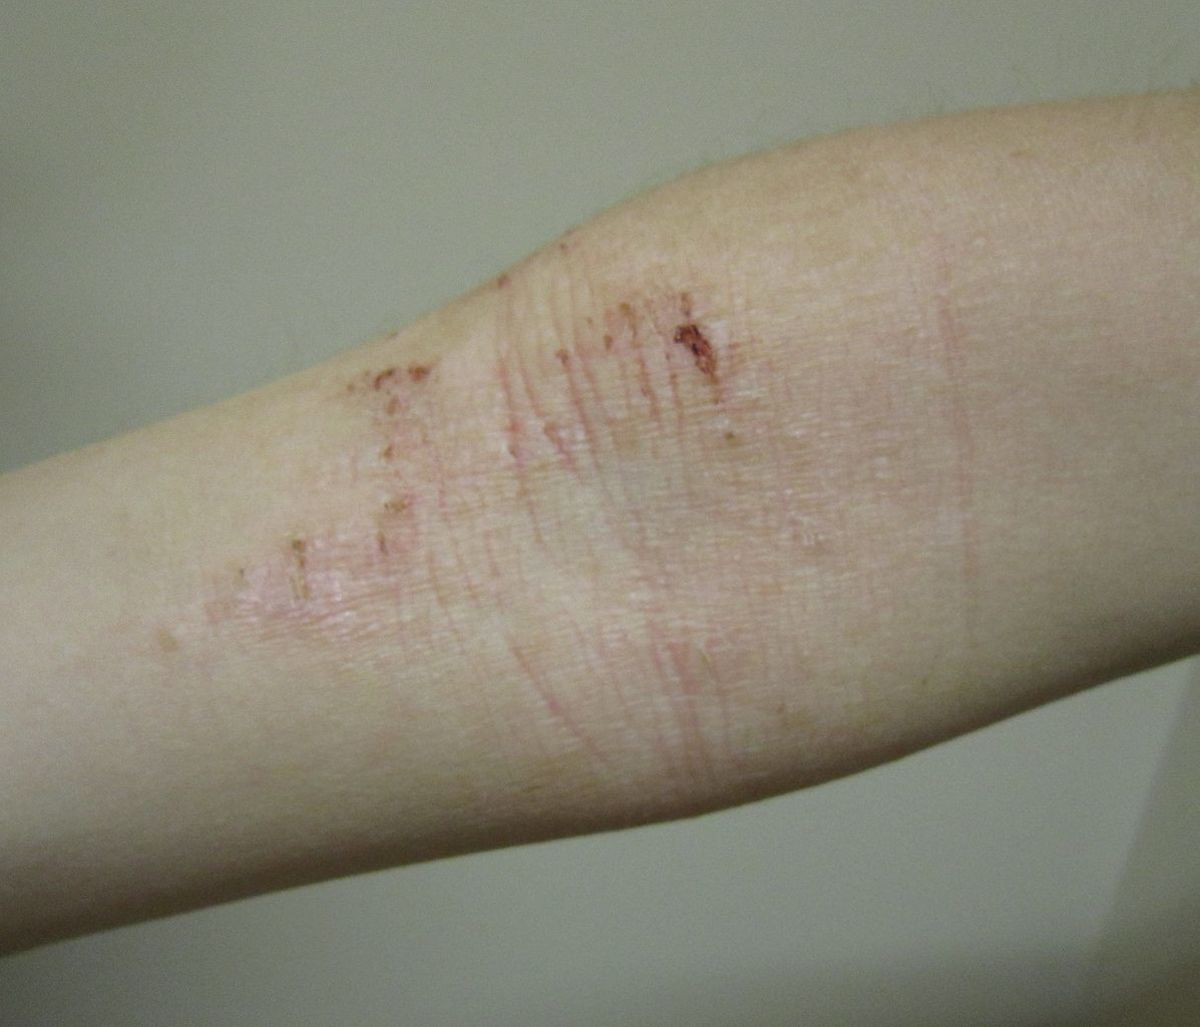 Atopy in area of the skin that can crease and become more moist.